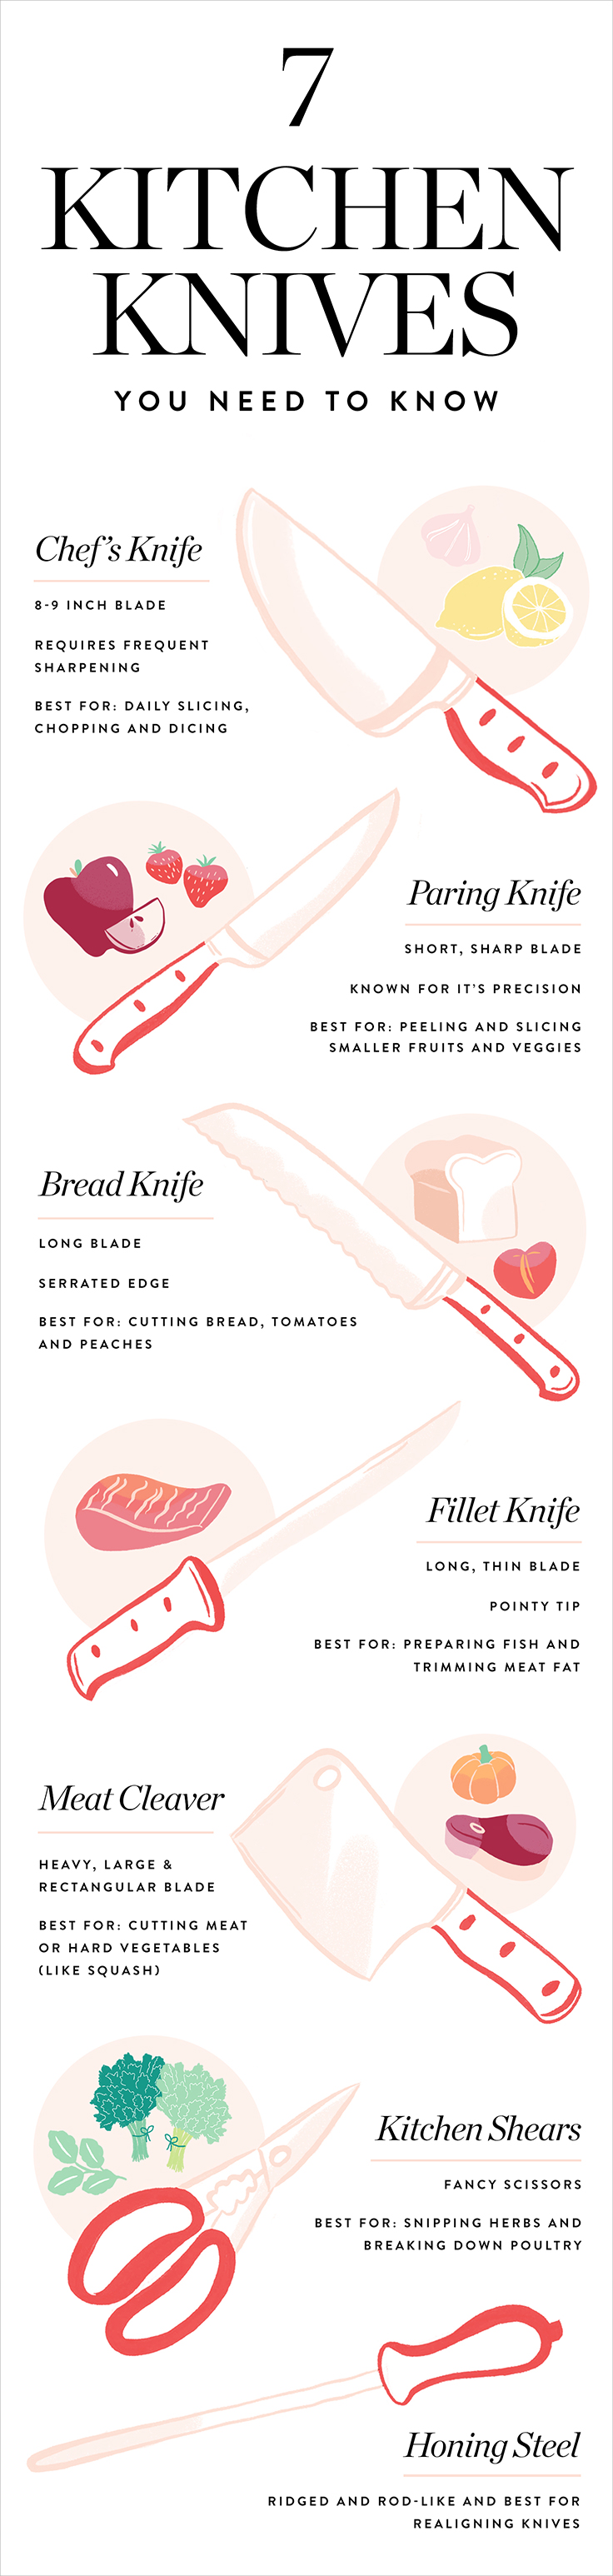 7 Kitchen Knives You Need to Know.jpg